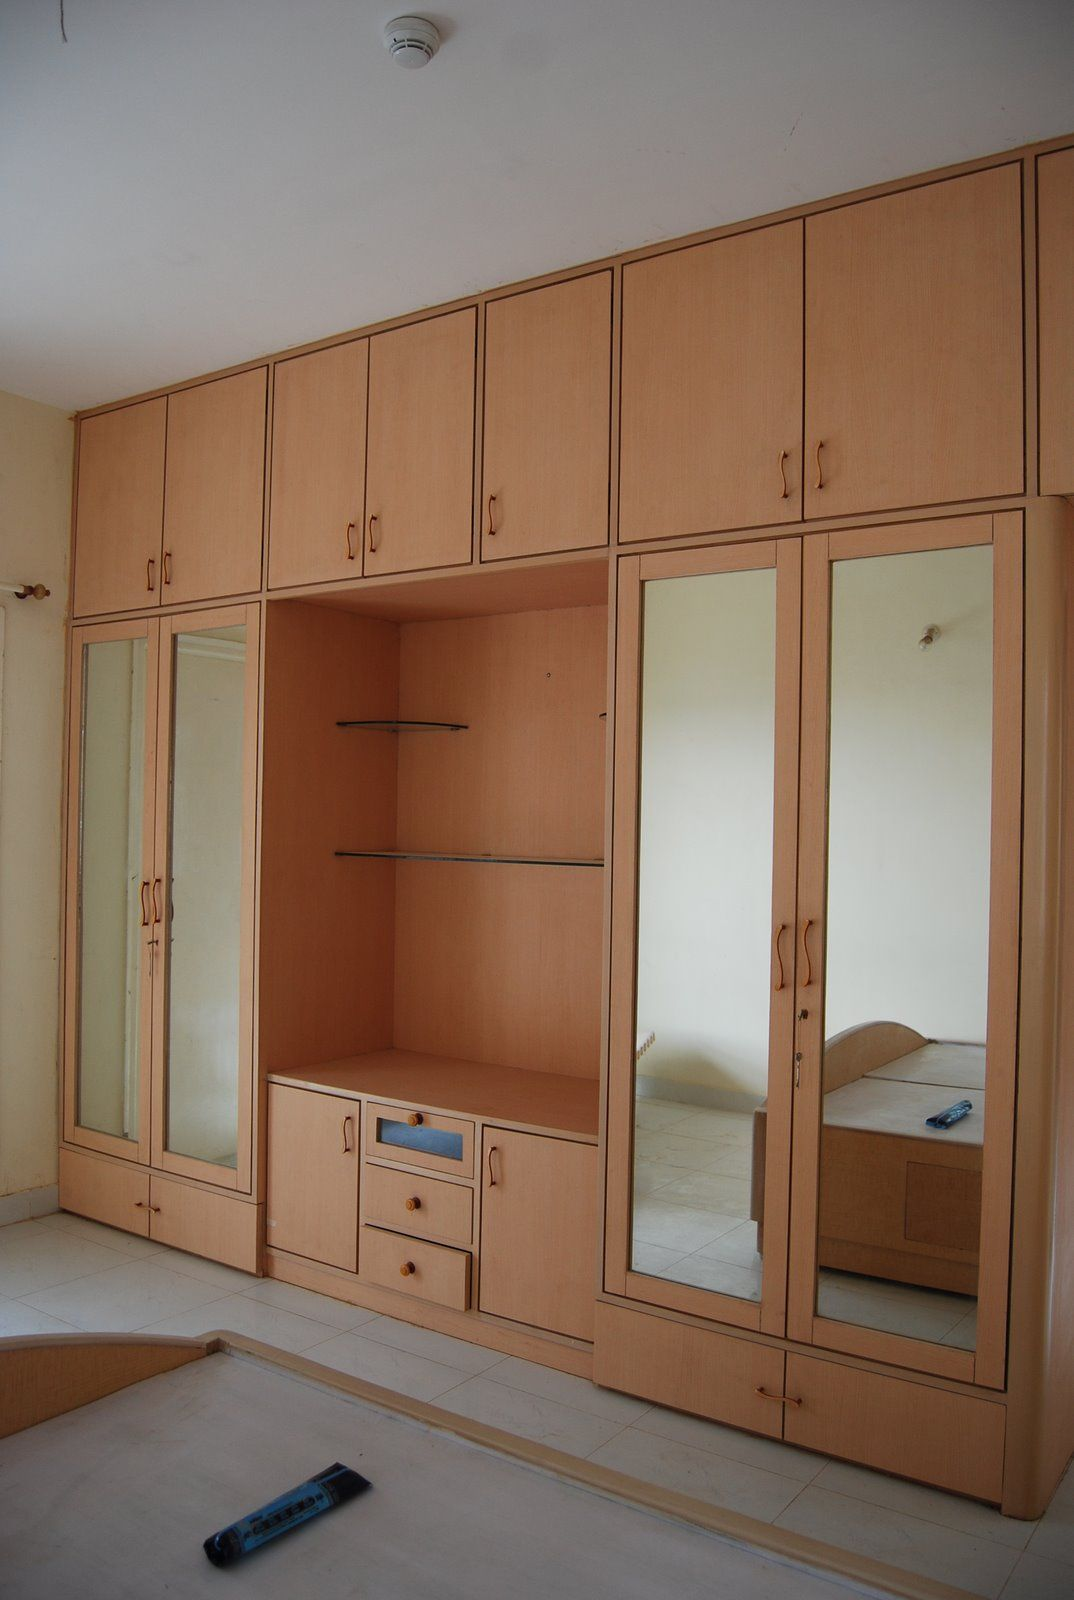 Bedroom Wardrobe Design Playwood Wadrobe With Cabinets Also ...